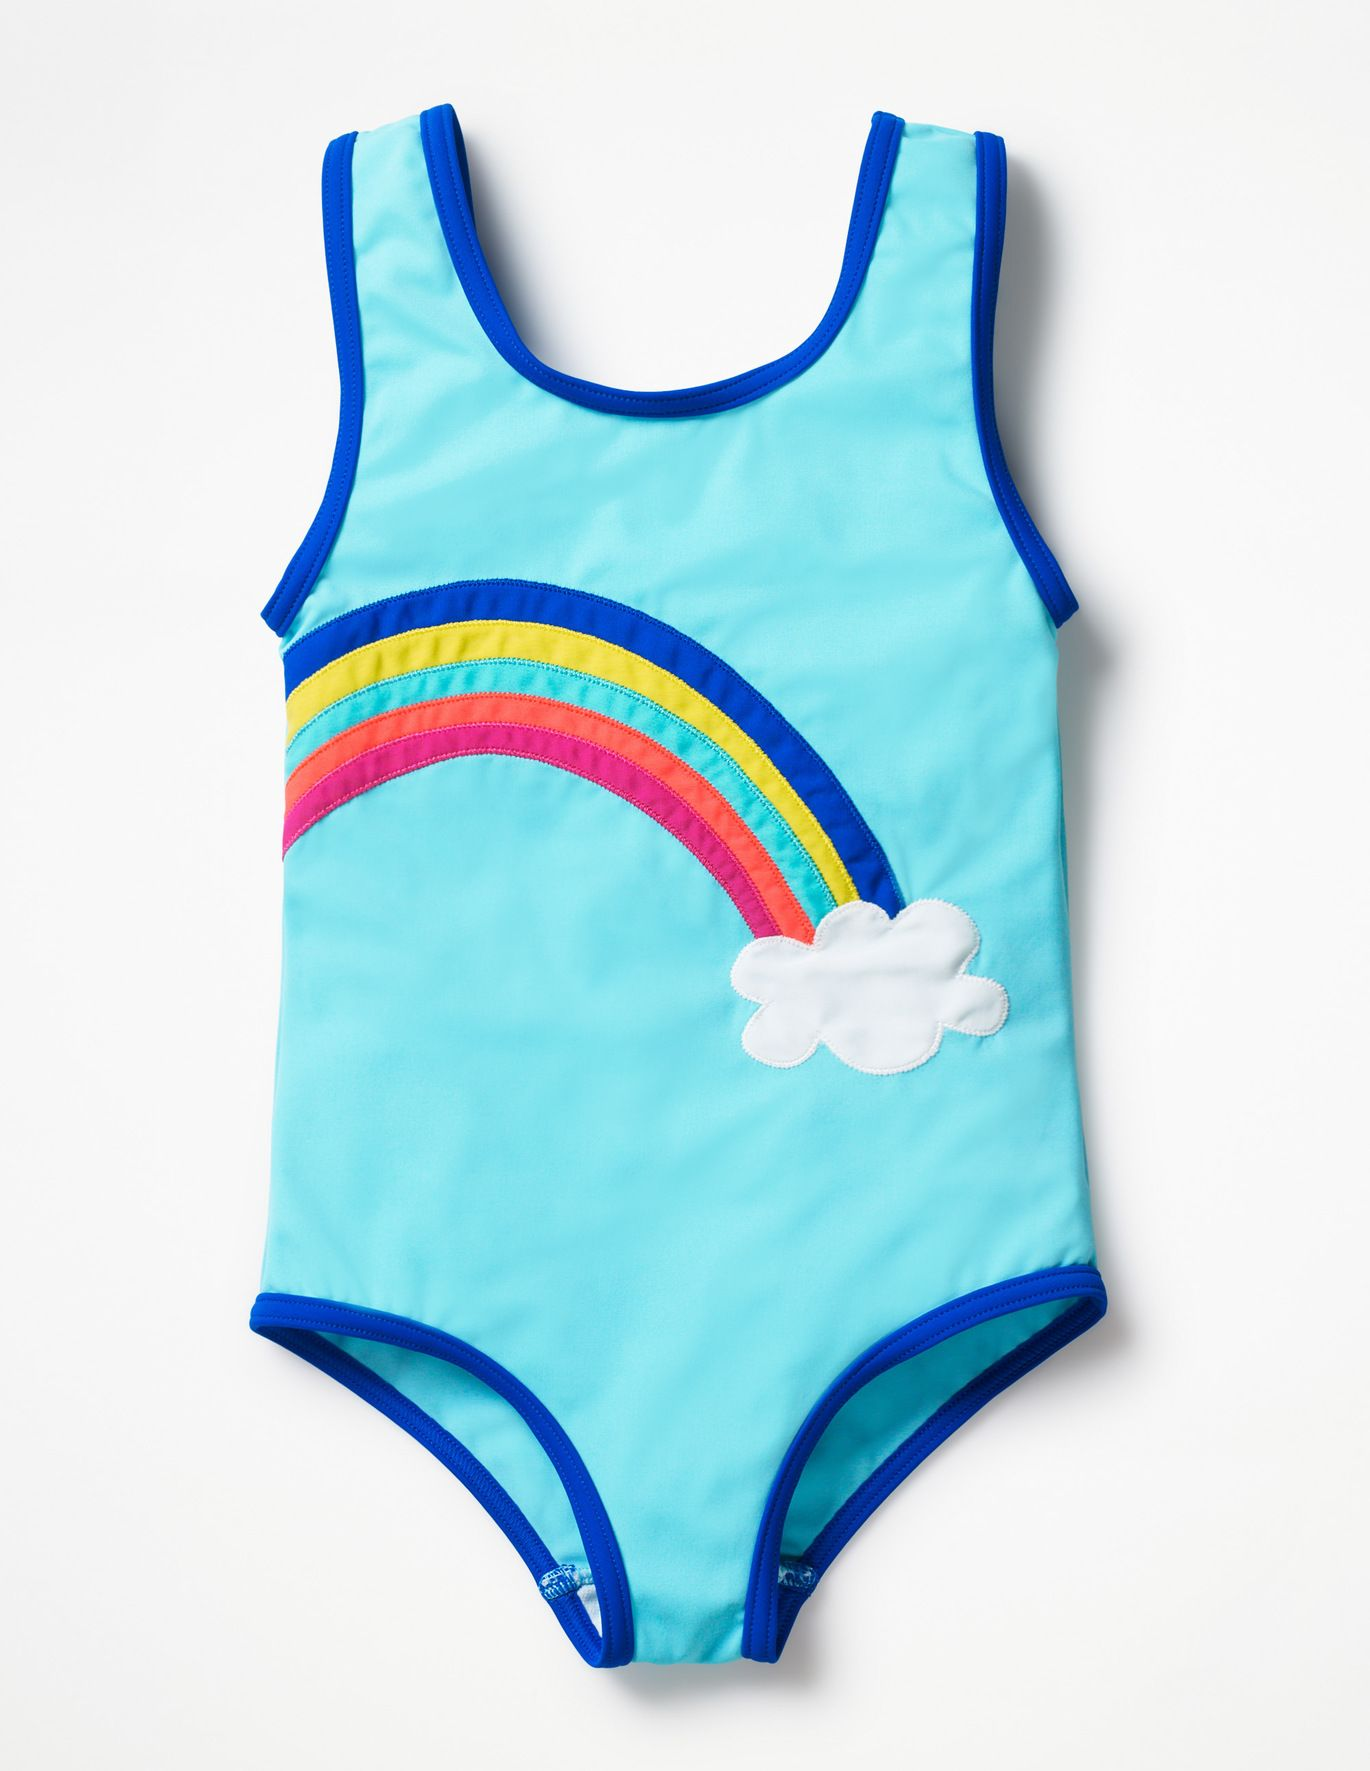 4f5e56f82df8c Fun Detail Swimsuit - Light Blue Rainbow | laynie loves style / KIDS ...